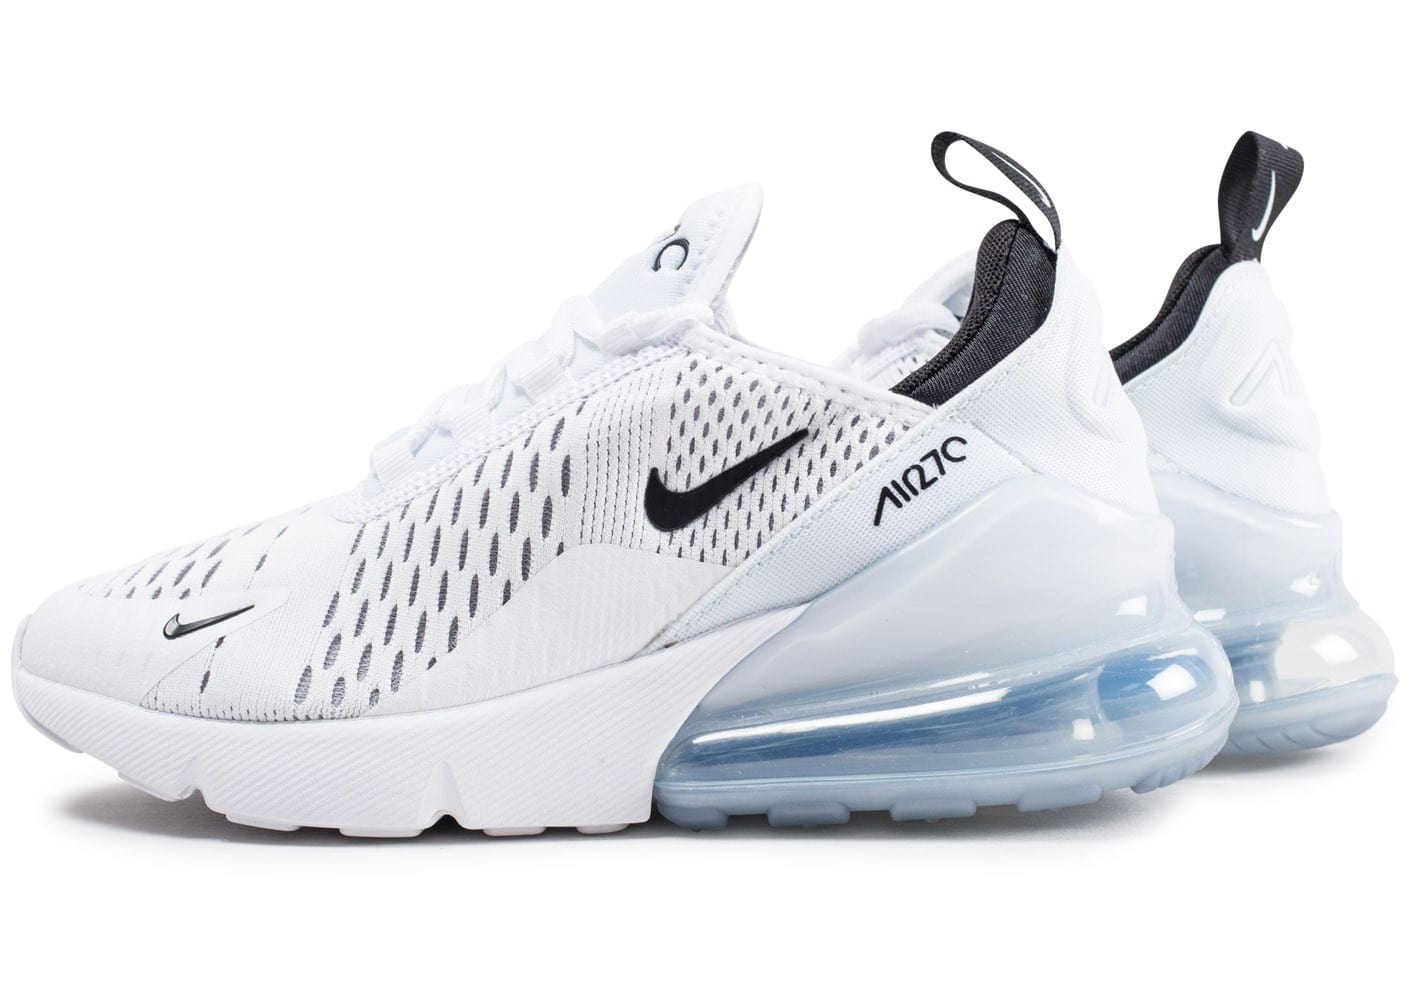 nike air max 270 junior blanche et noire chaussures femme chausport. Black Bedroom Furniture Sets. Home Design Ideas